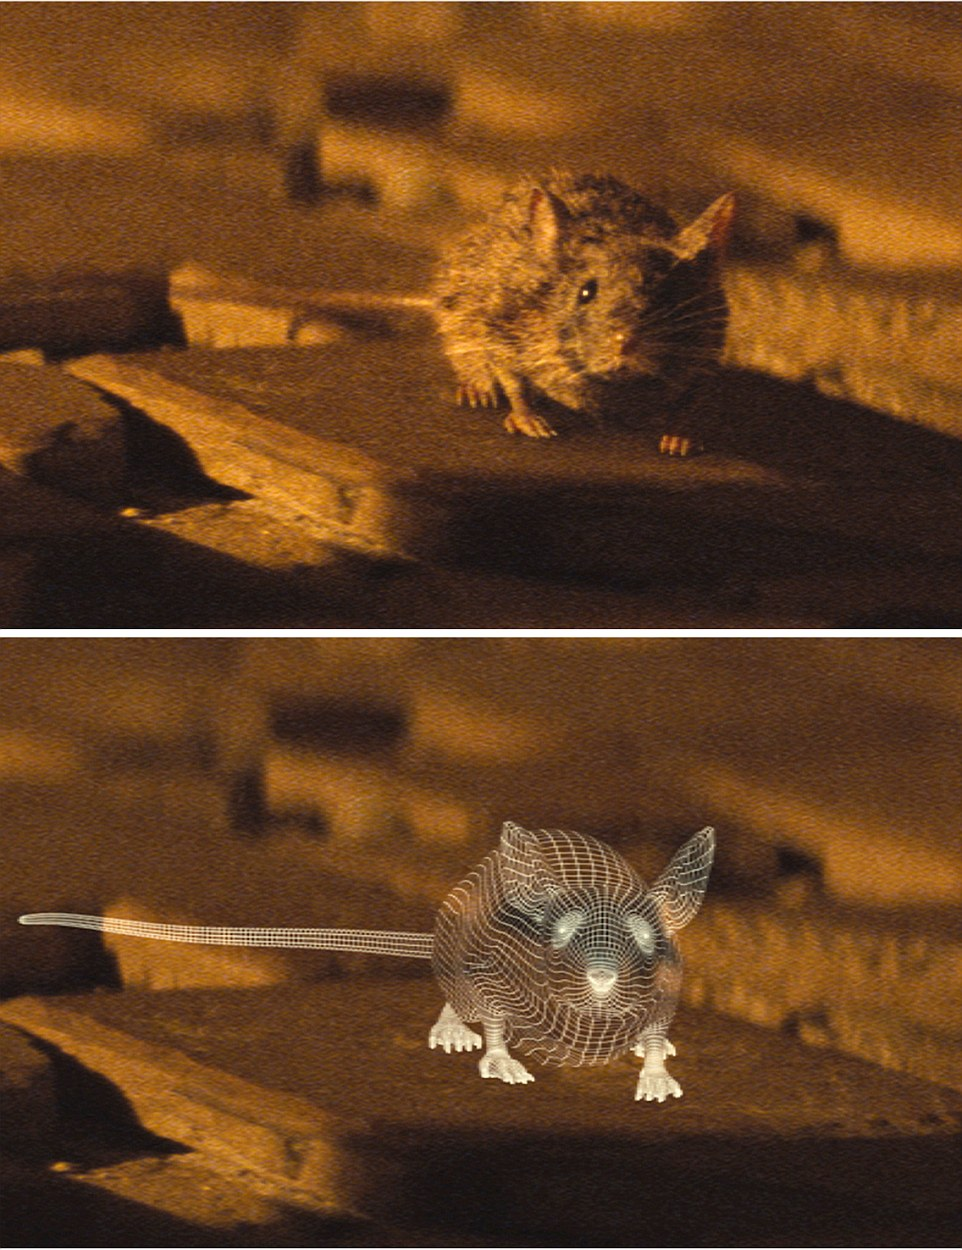 Spectre (2015) James Bond is led to his next clue in the hunt for Blofeld by a mouse which crawls along the floor to a secret room within an apartment 'Who sent you?' Bond asks the mouse - we see (BOTTOM) entirely the mouse was computer trickery